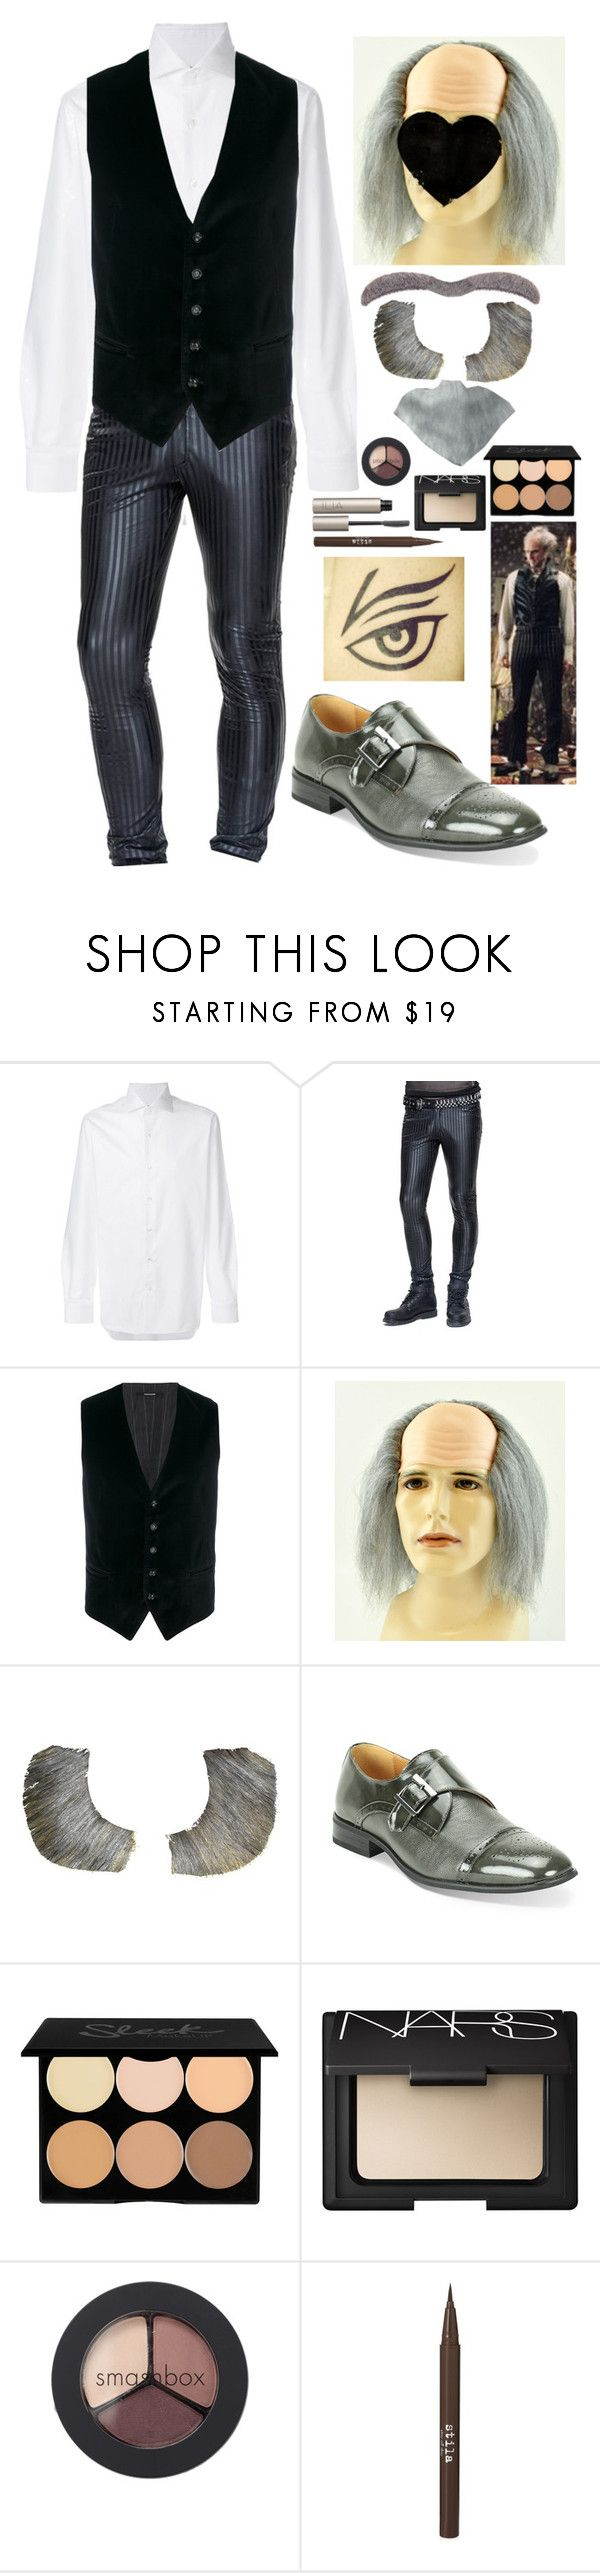 """elias - halloween 2017 (count olaf)"" by kinathegreat ❤ liked on Polyvore featuring Barba, Tagliatore, NARS Cosmetics, Smashbox, Stila, men's fashion and menswear"